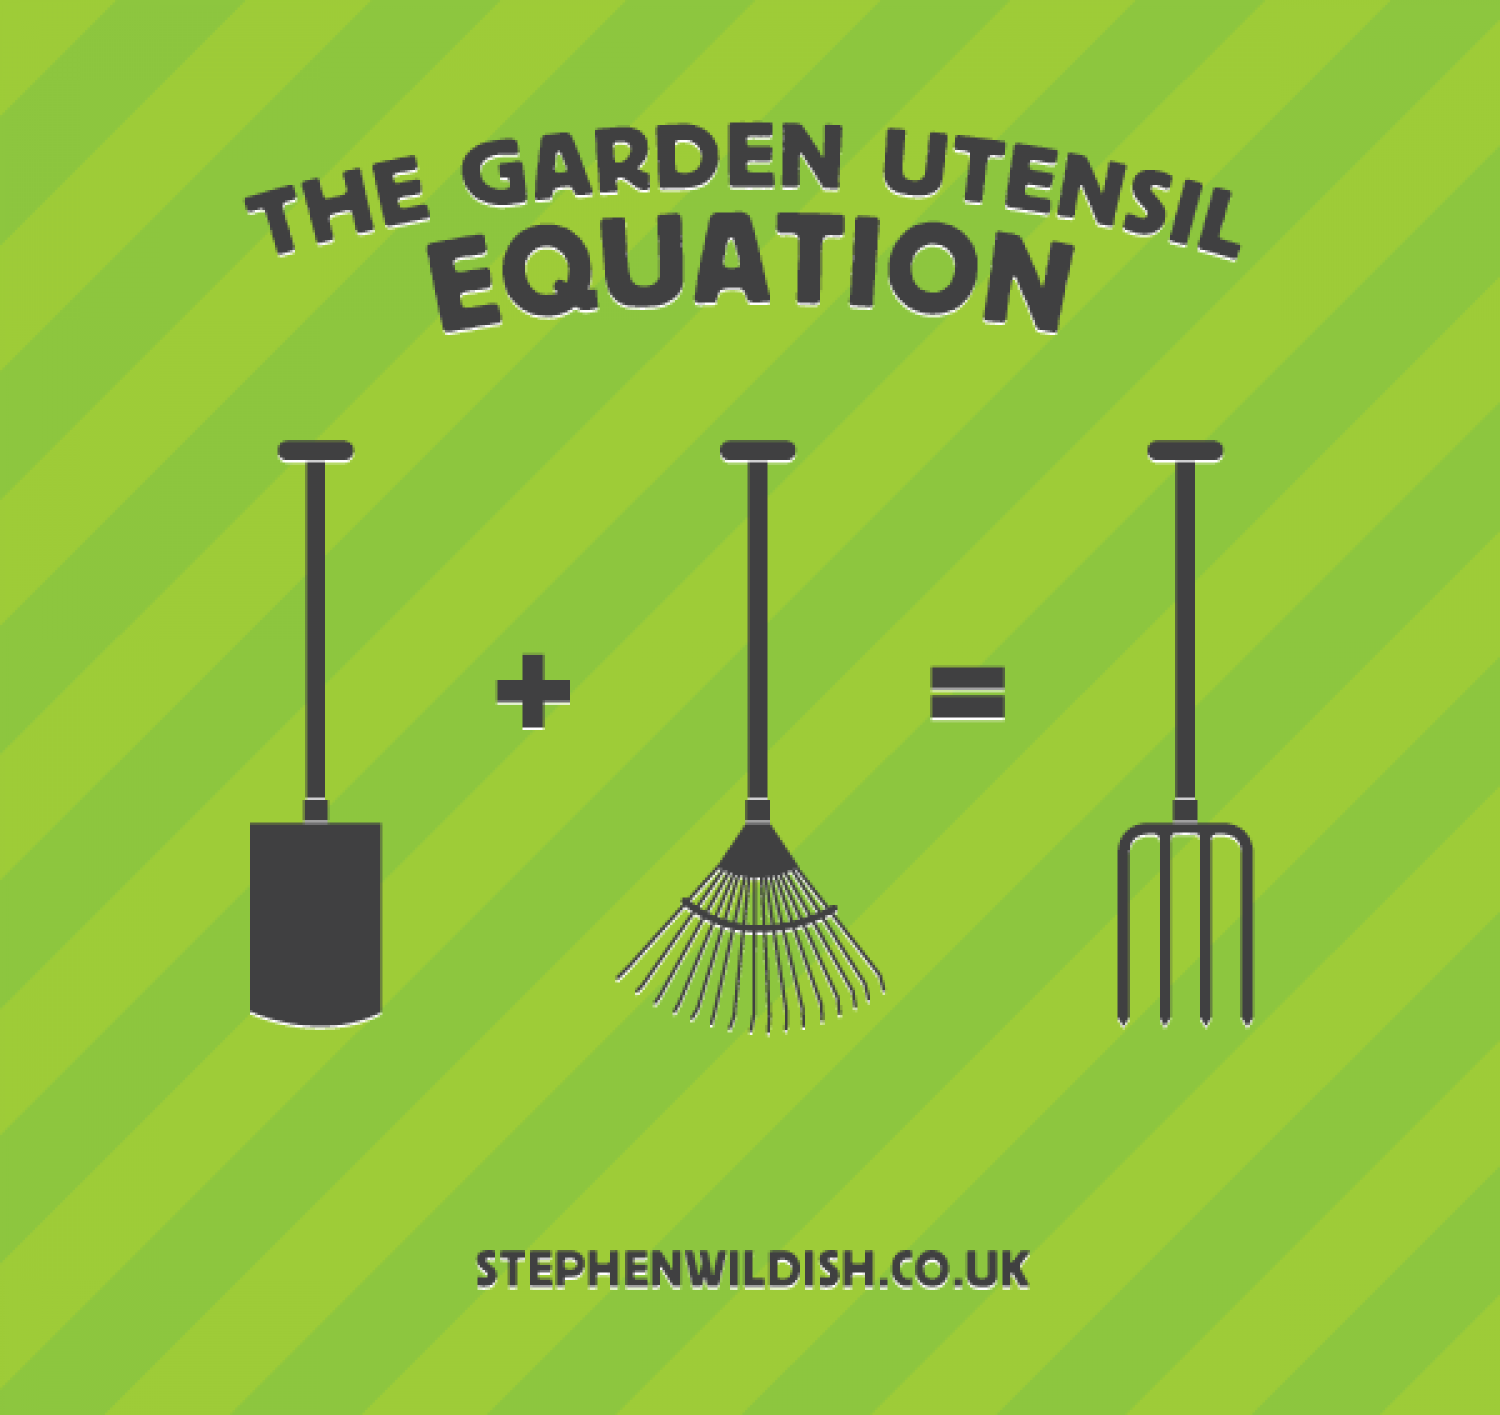 The Garden Utensil Equation Infographic